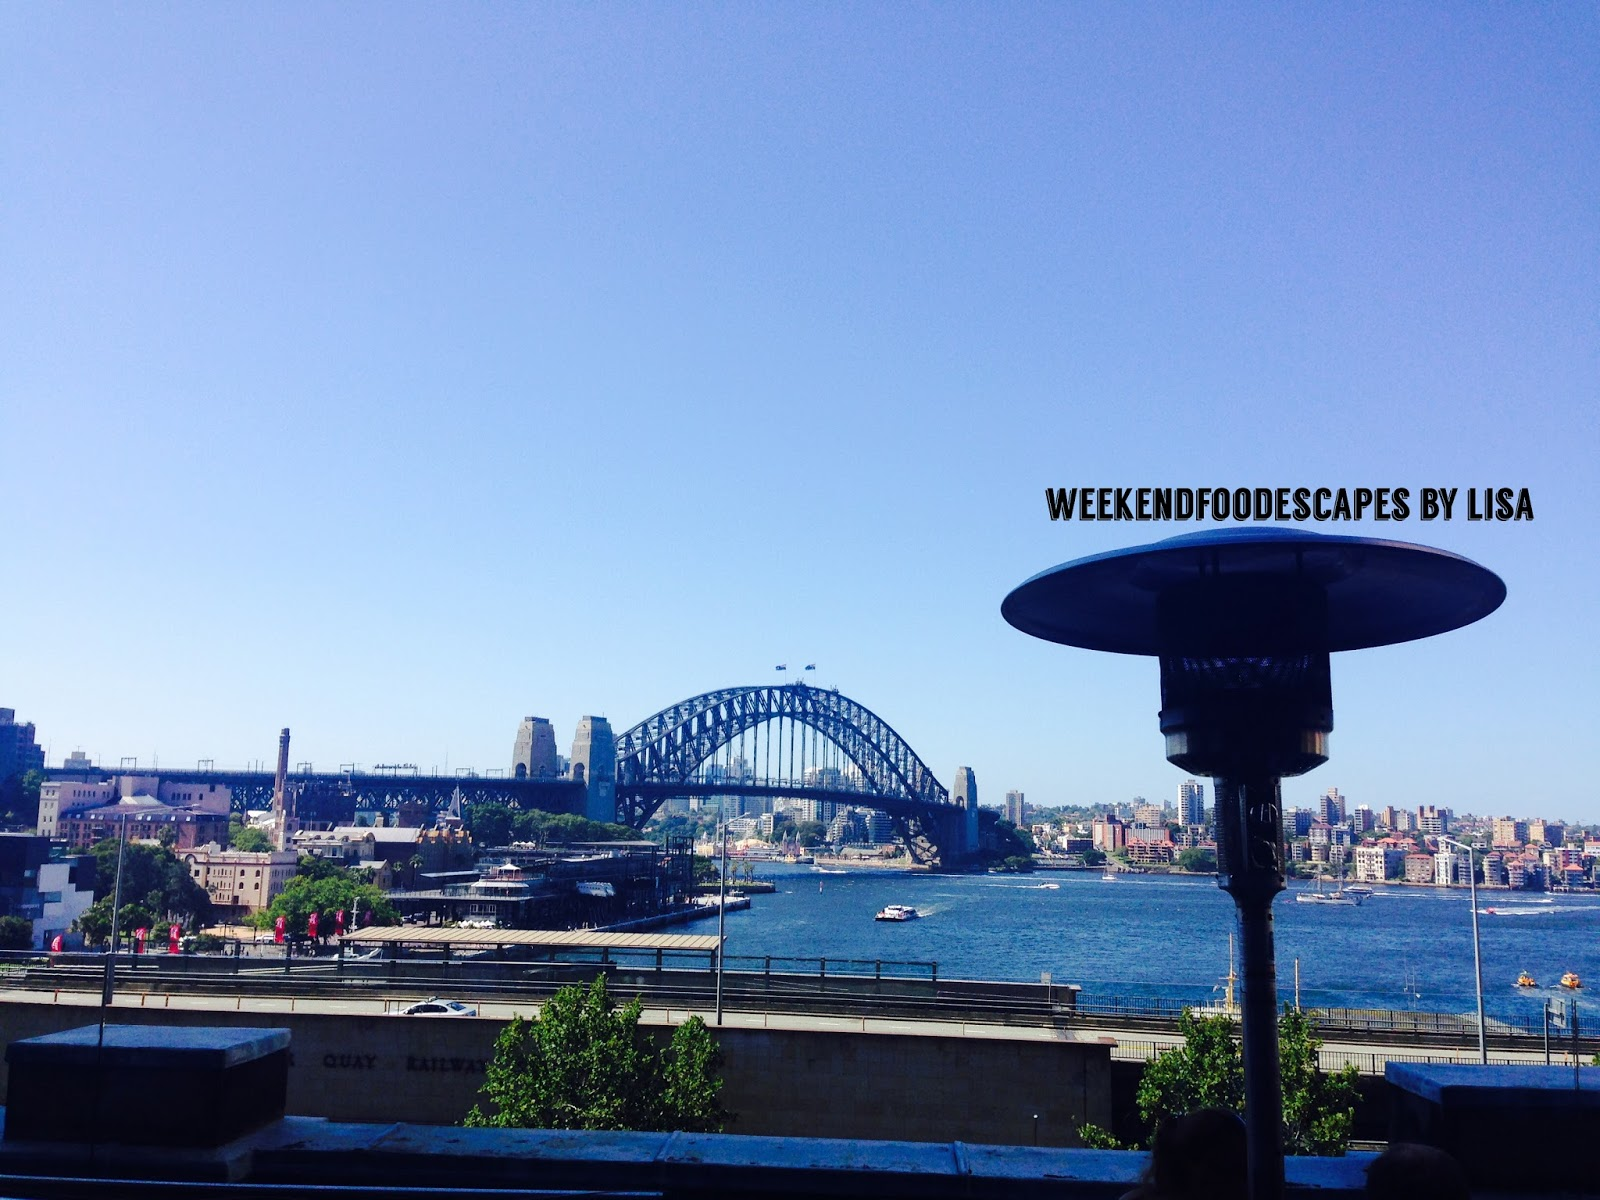 weekend escape sydney - photo#11